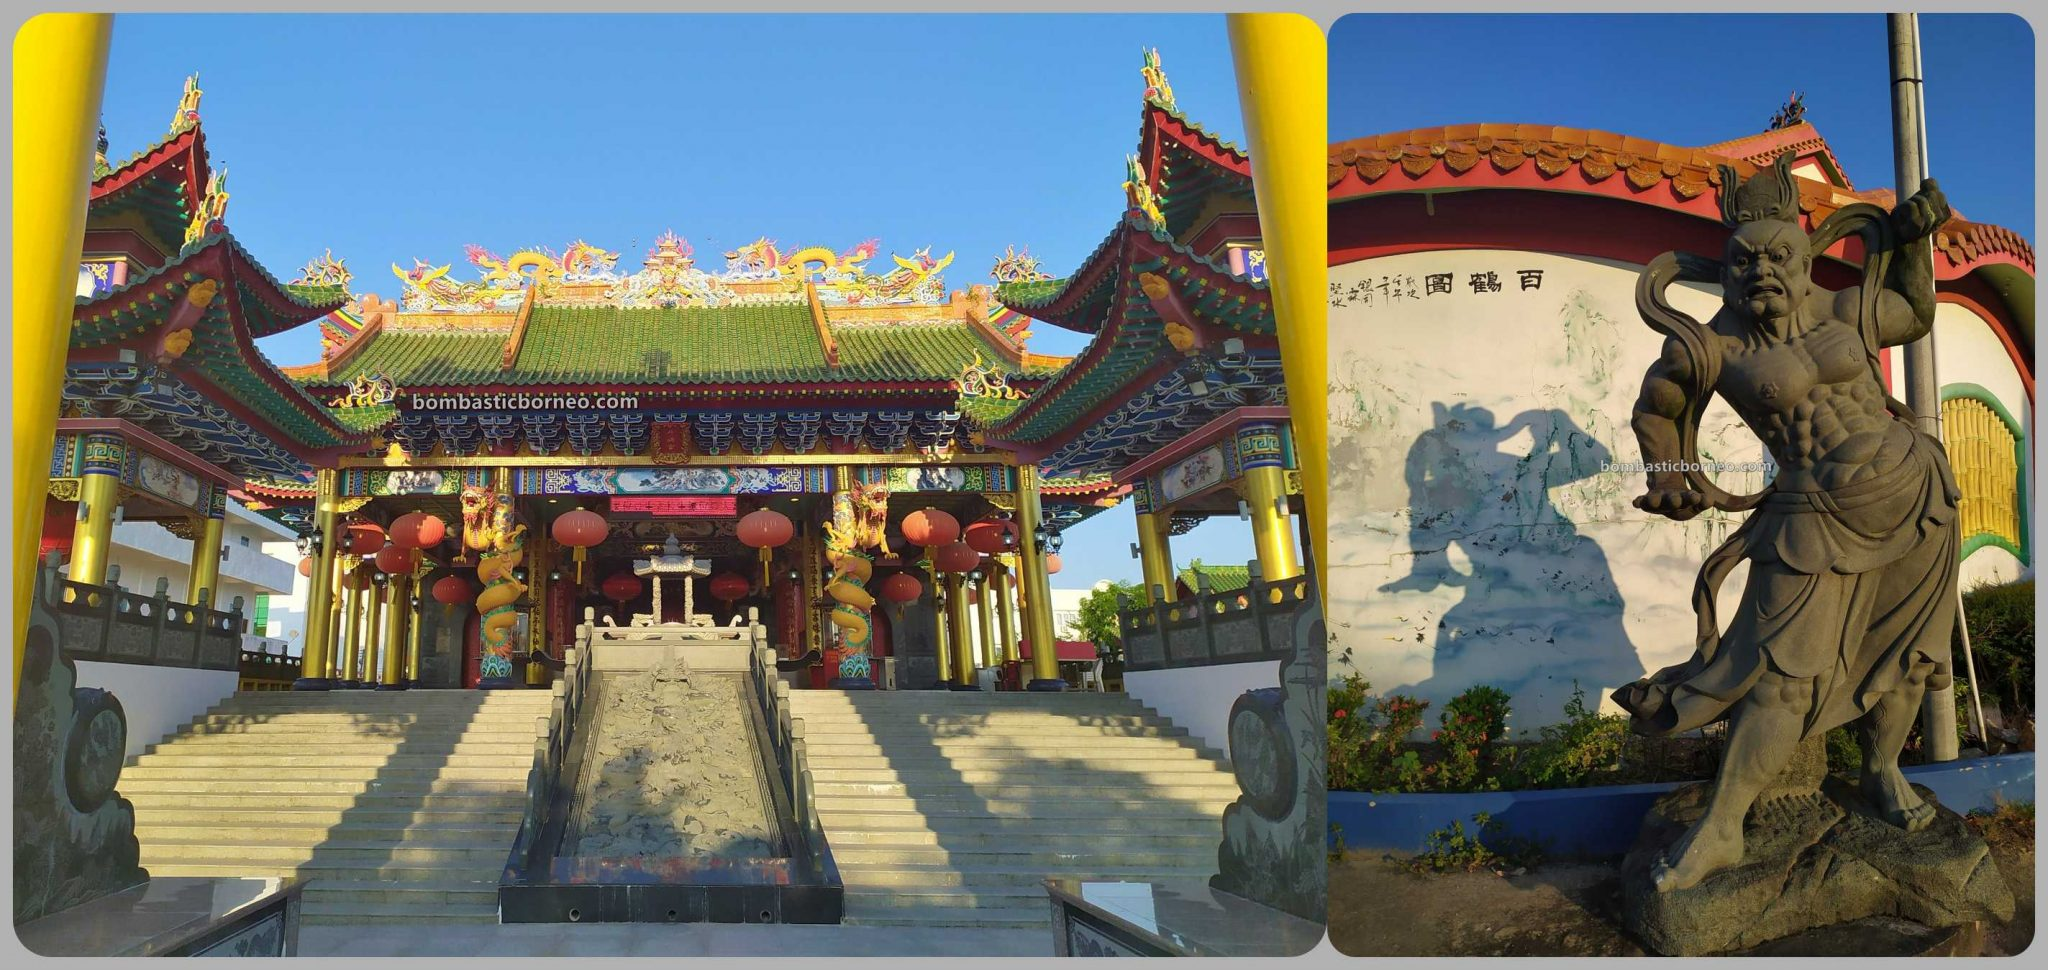 Hai Long Si Temple, backpackers, destination, Taoist Temple, Discover Miri City, exploration, Tourism, travel guide, Borneo, 穿越婆罗洲马来西亚, 砂拉越旅游景点, 美里海龙寺斗姆宫,